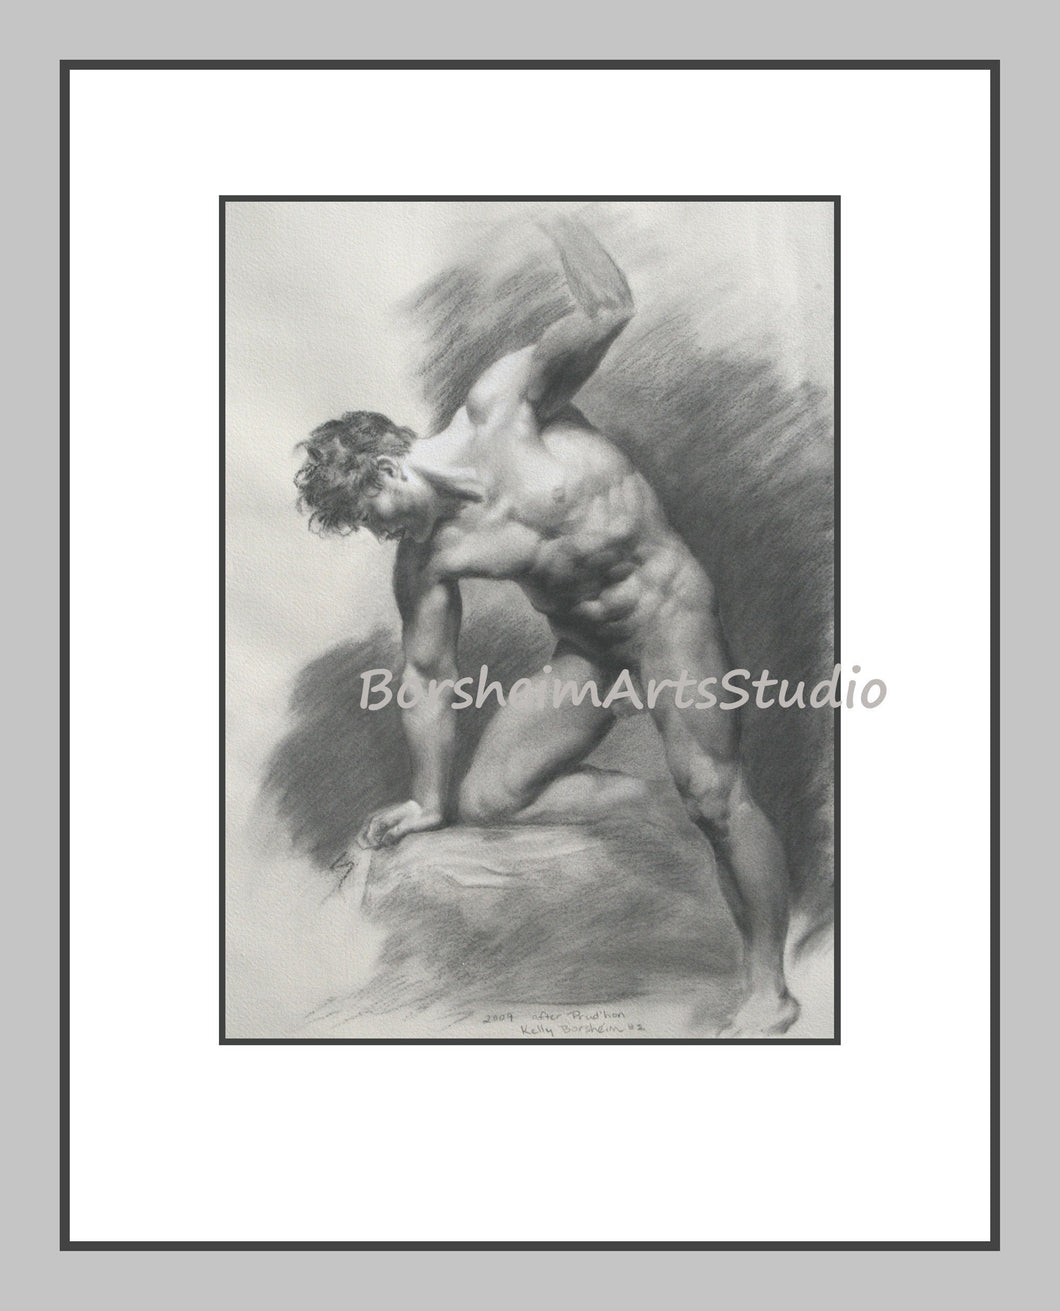 After Prudhon 2 Muscular Athletic Male Nude Digital Download of Charcoal Drawing Black and White Printable Art